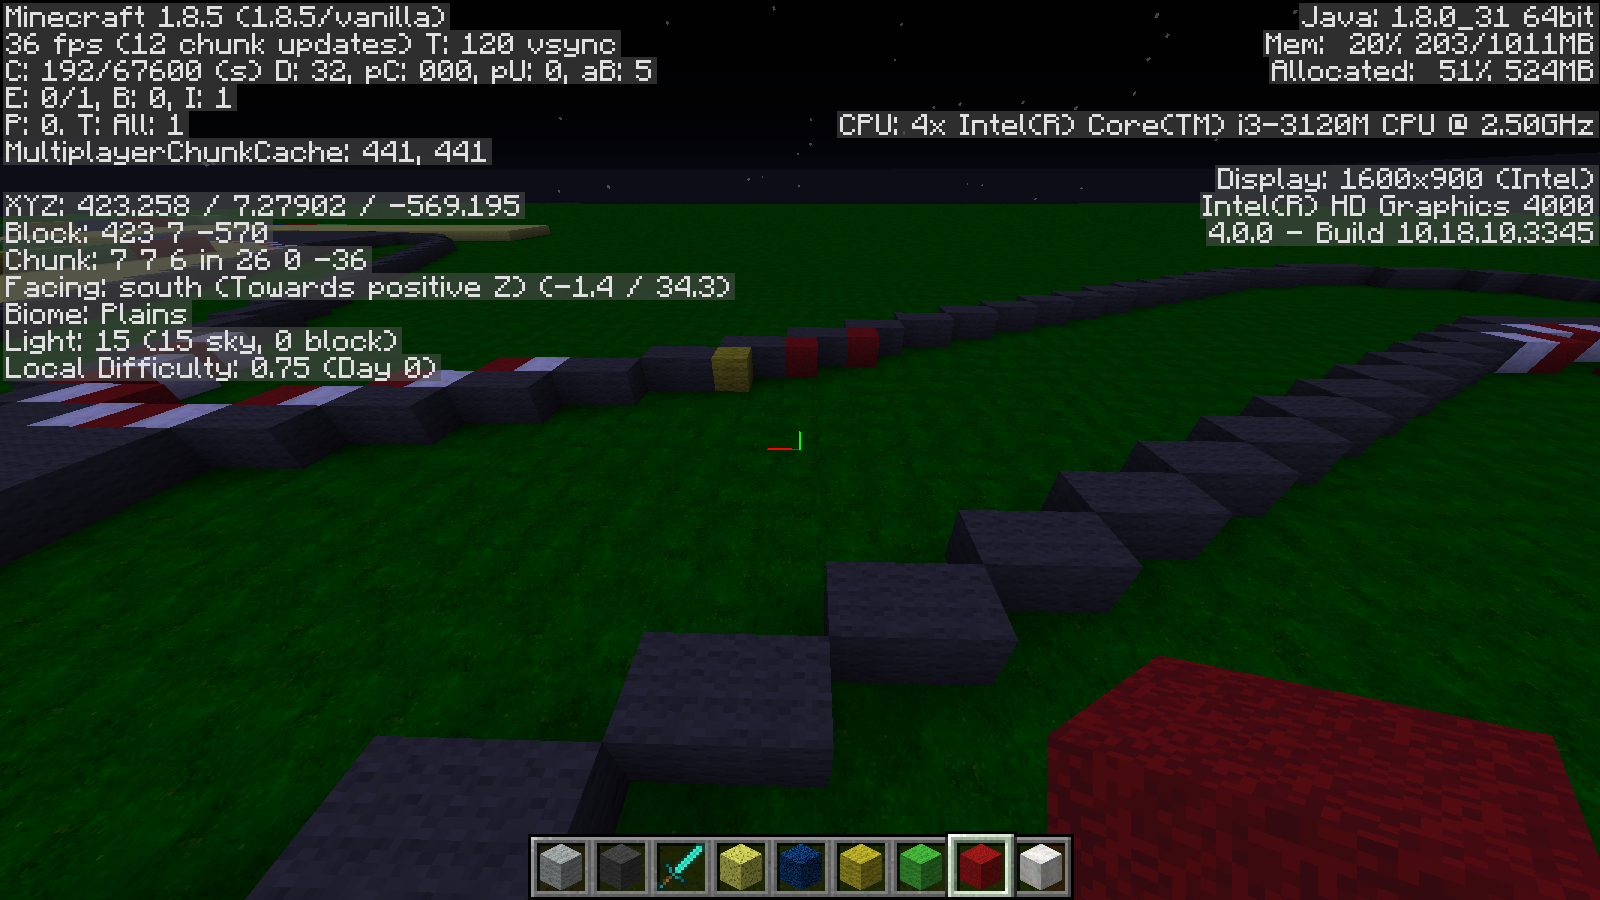 how to use the fill command in minecraft